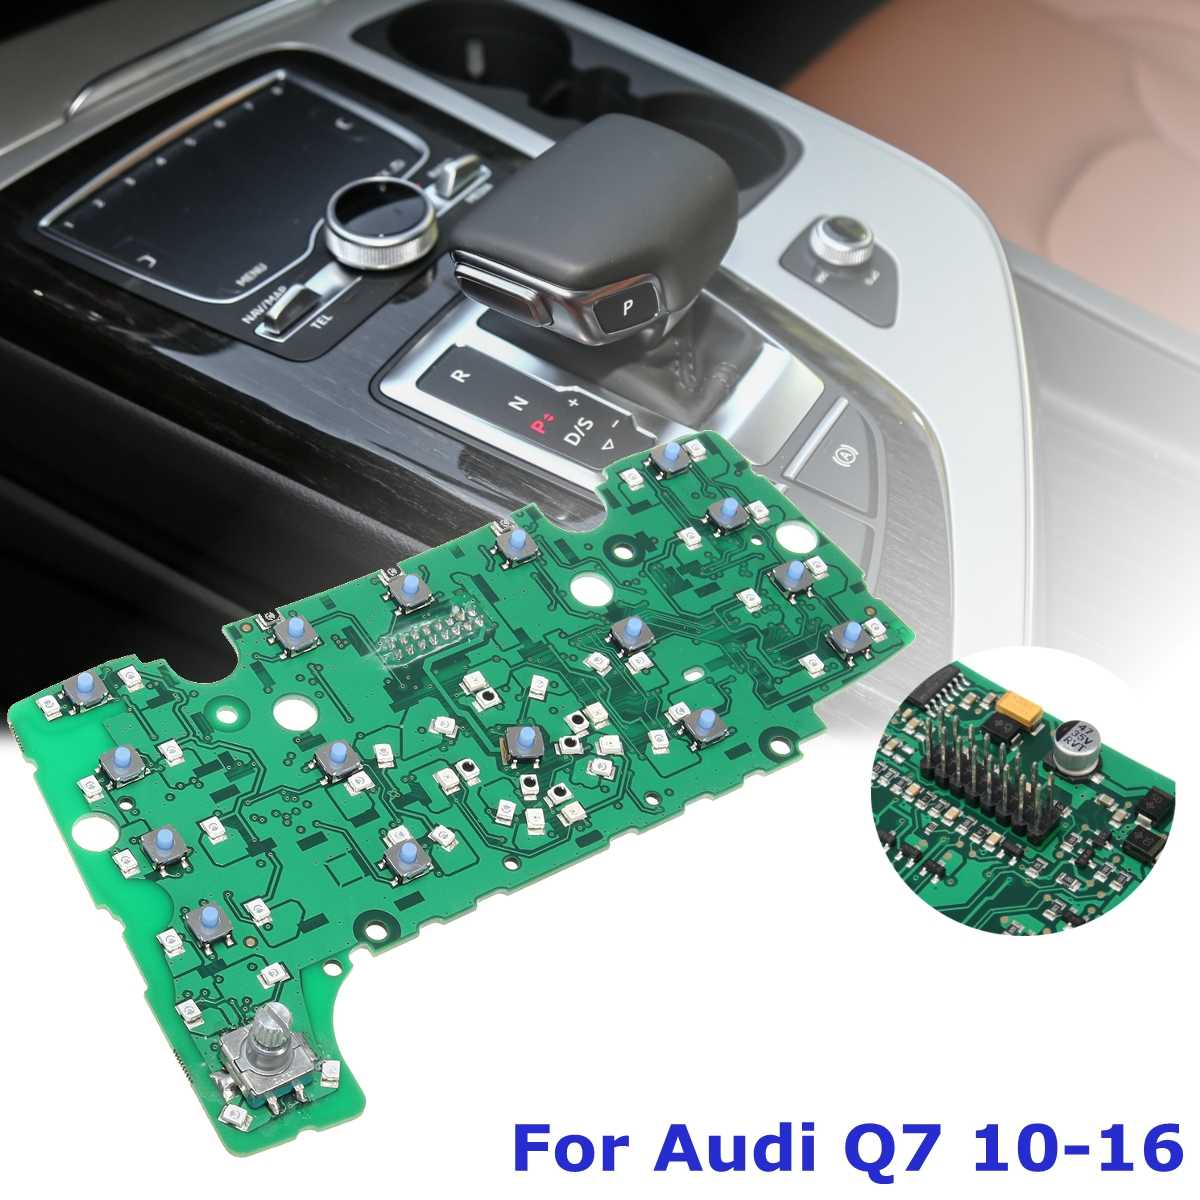 For Audi Q7 2010 2011 2012 2013-2016 Left Rudder LHD MMI Multimedia Interface E380 Control Panel Circuit Board Performance ChipsFor Audi Q7 2010 2011 2012 2013-2016 Left Rudder LHD MMI Multimedia Interface E380 Control Panel Circuit Board Performance Chips